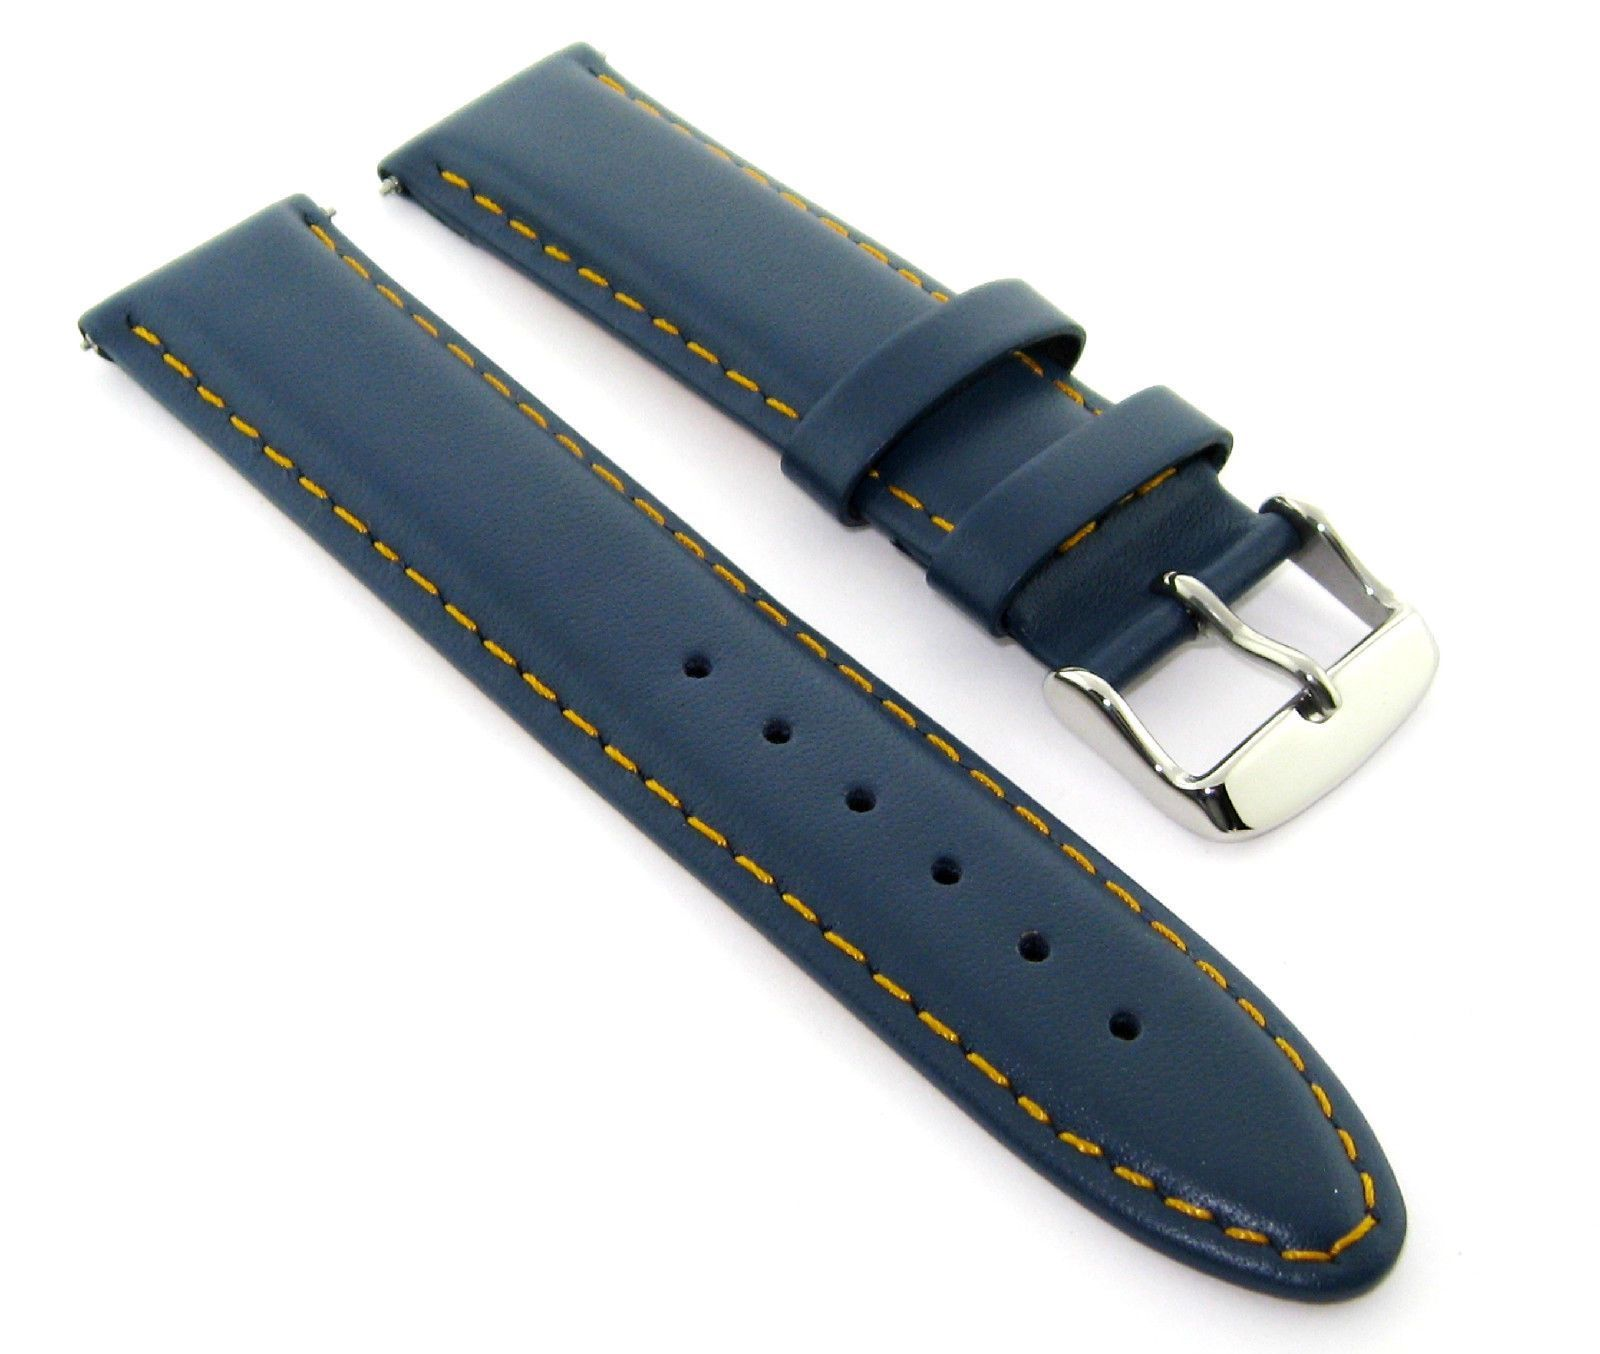 19Mm Leather Watch Strap Smooth Band For Tissot Prc200 Blue Orange Stitchins #16